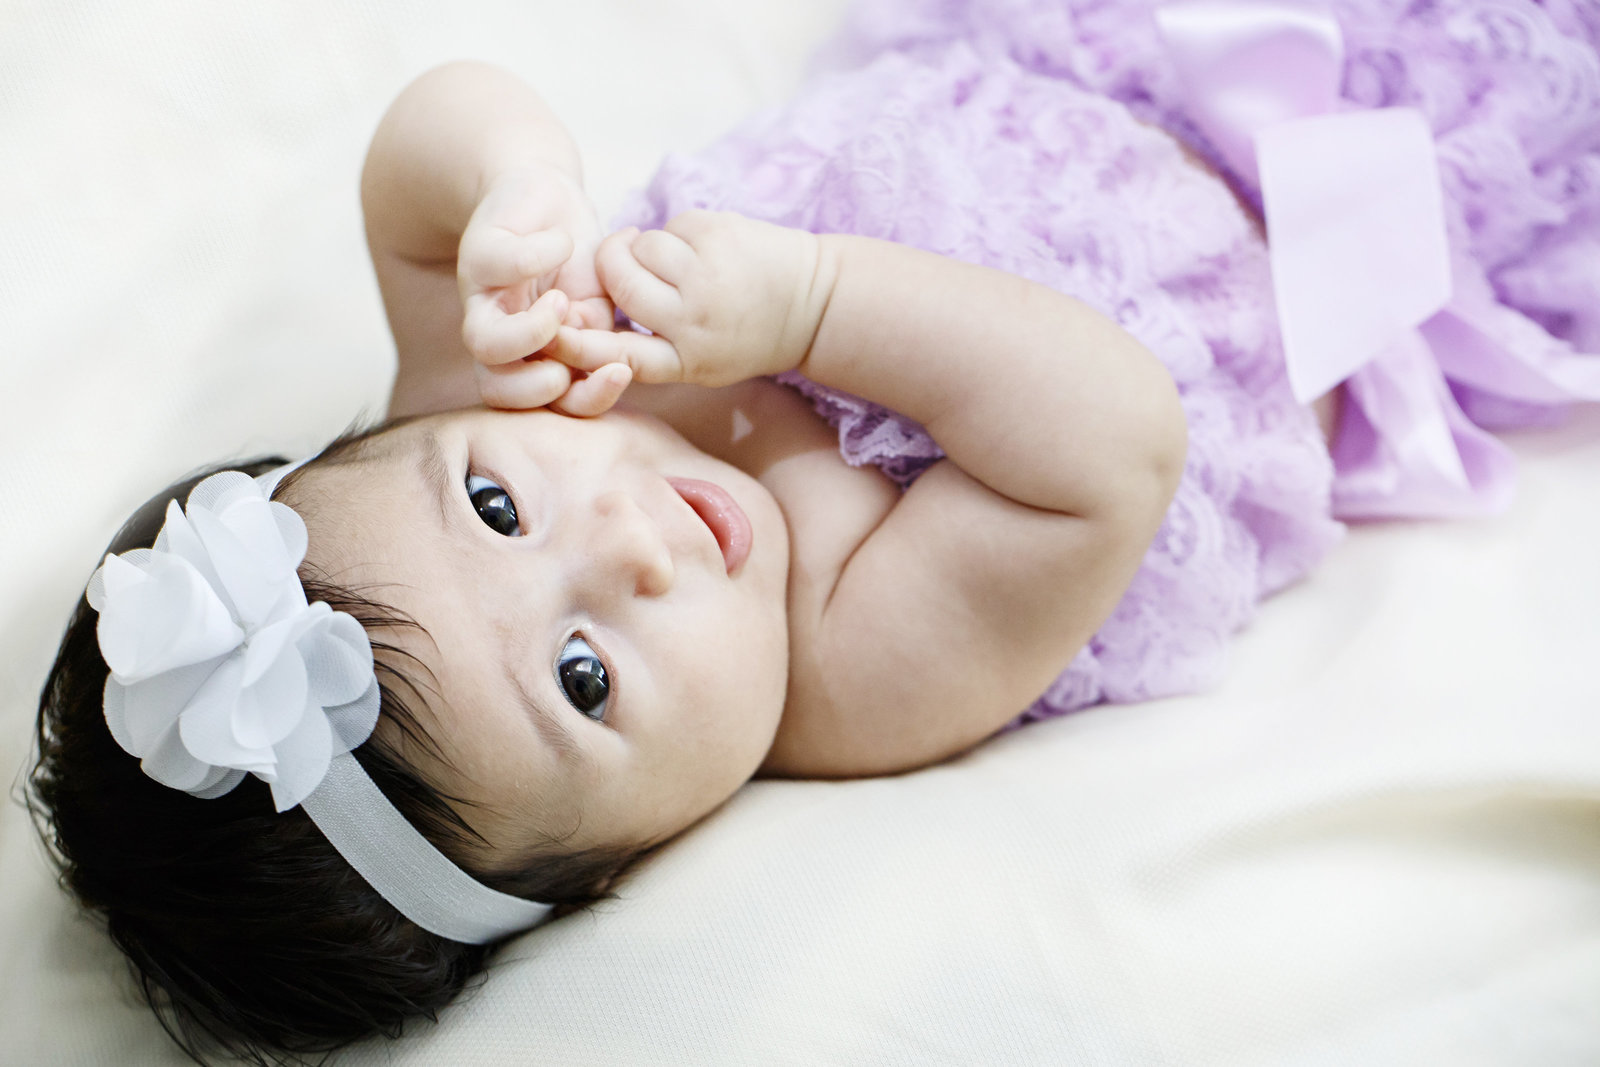 AmyAnaiz_Miami_Florida_Newborn_Session_007